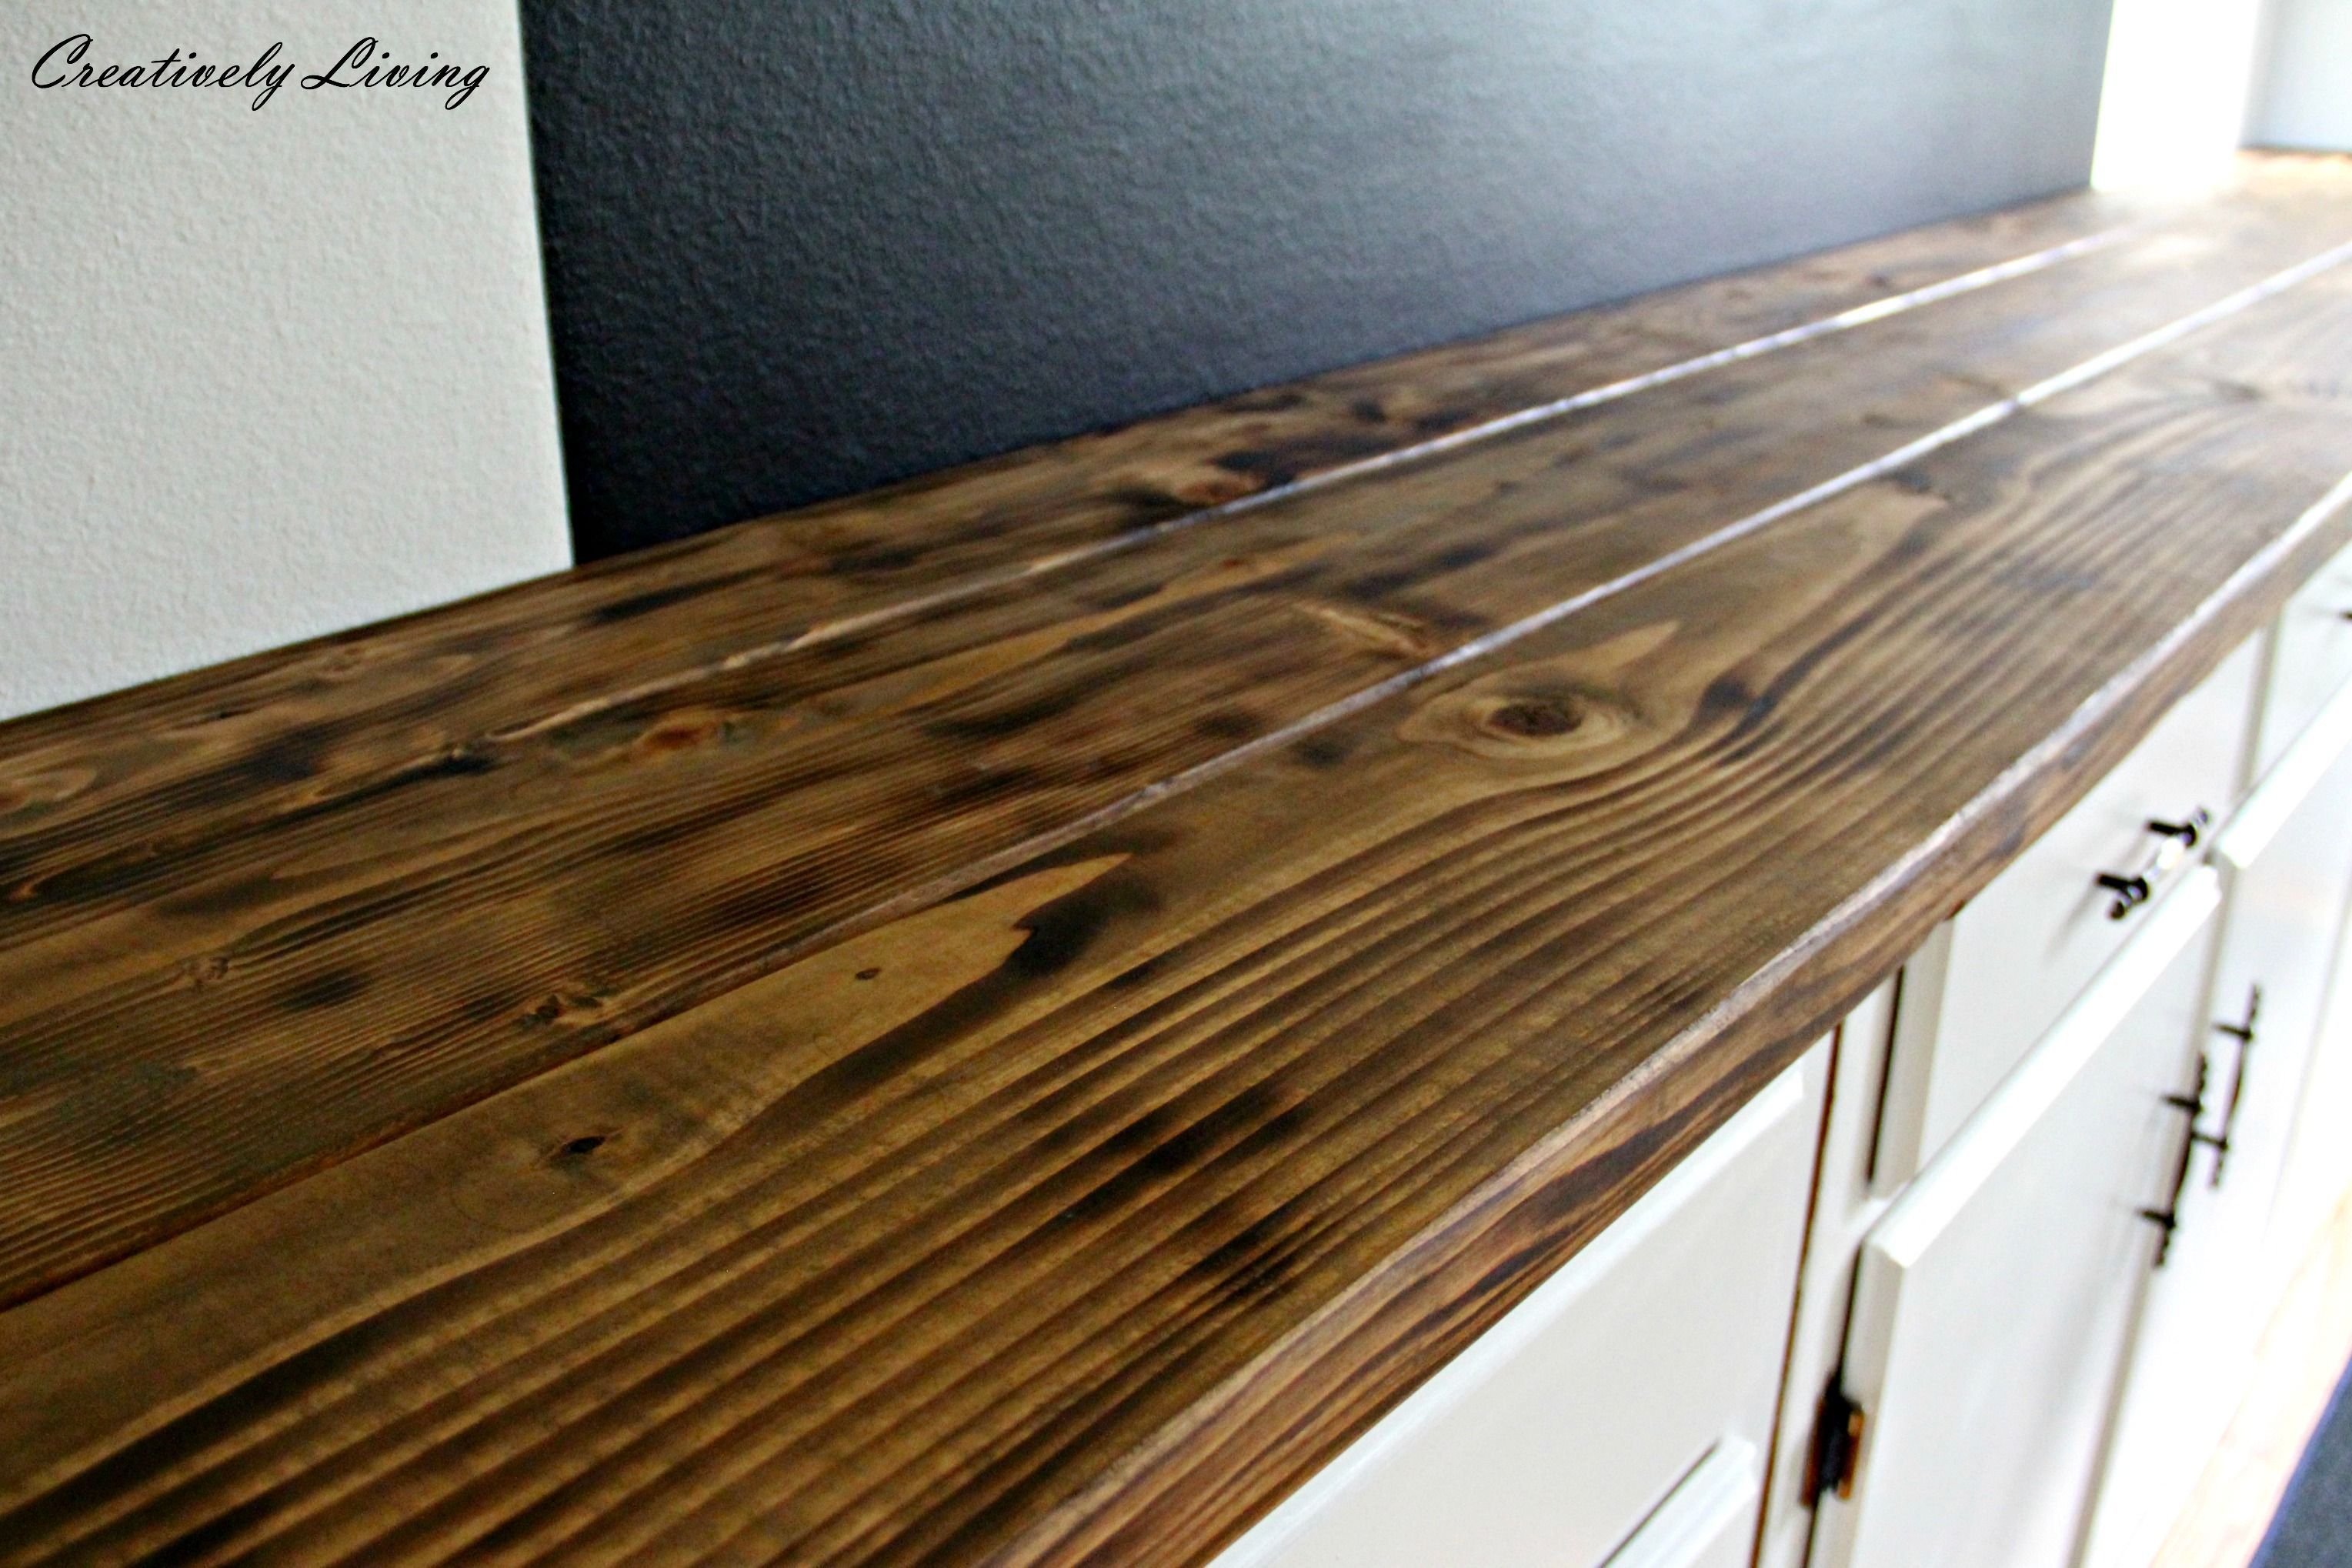 Torched Diy Rustic Wood Counter Top For Under 50 By